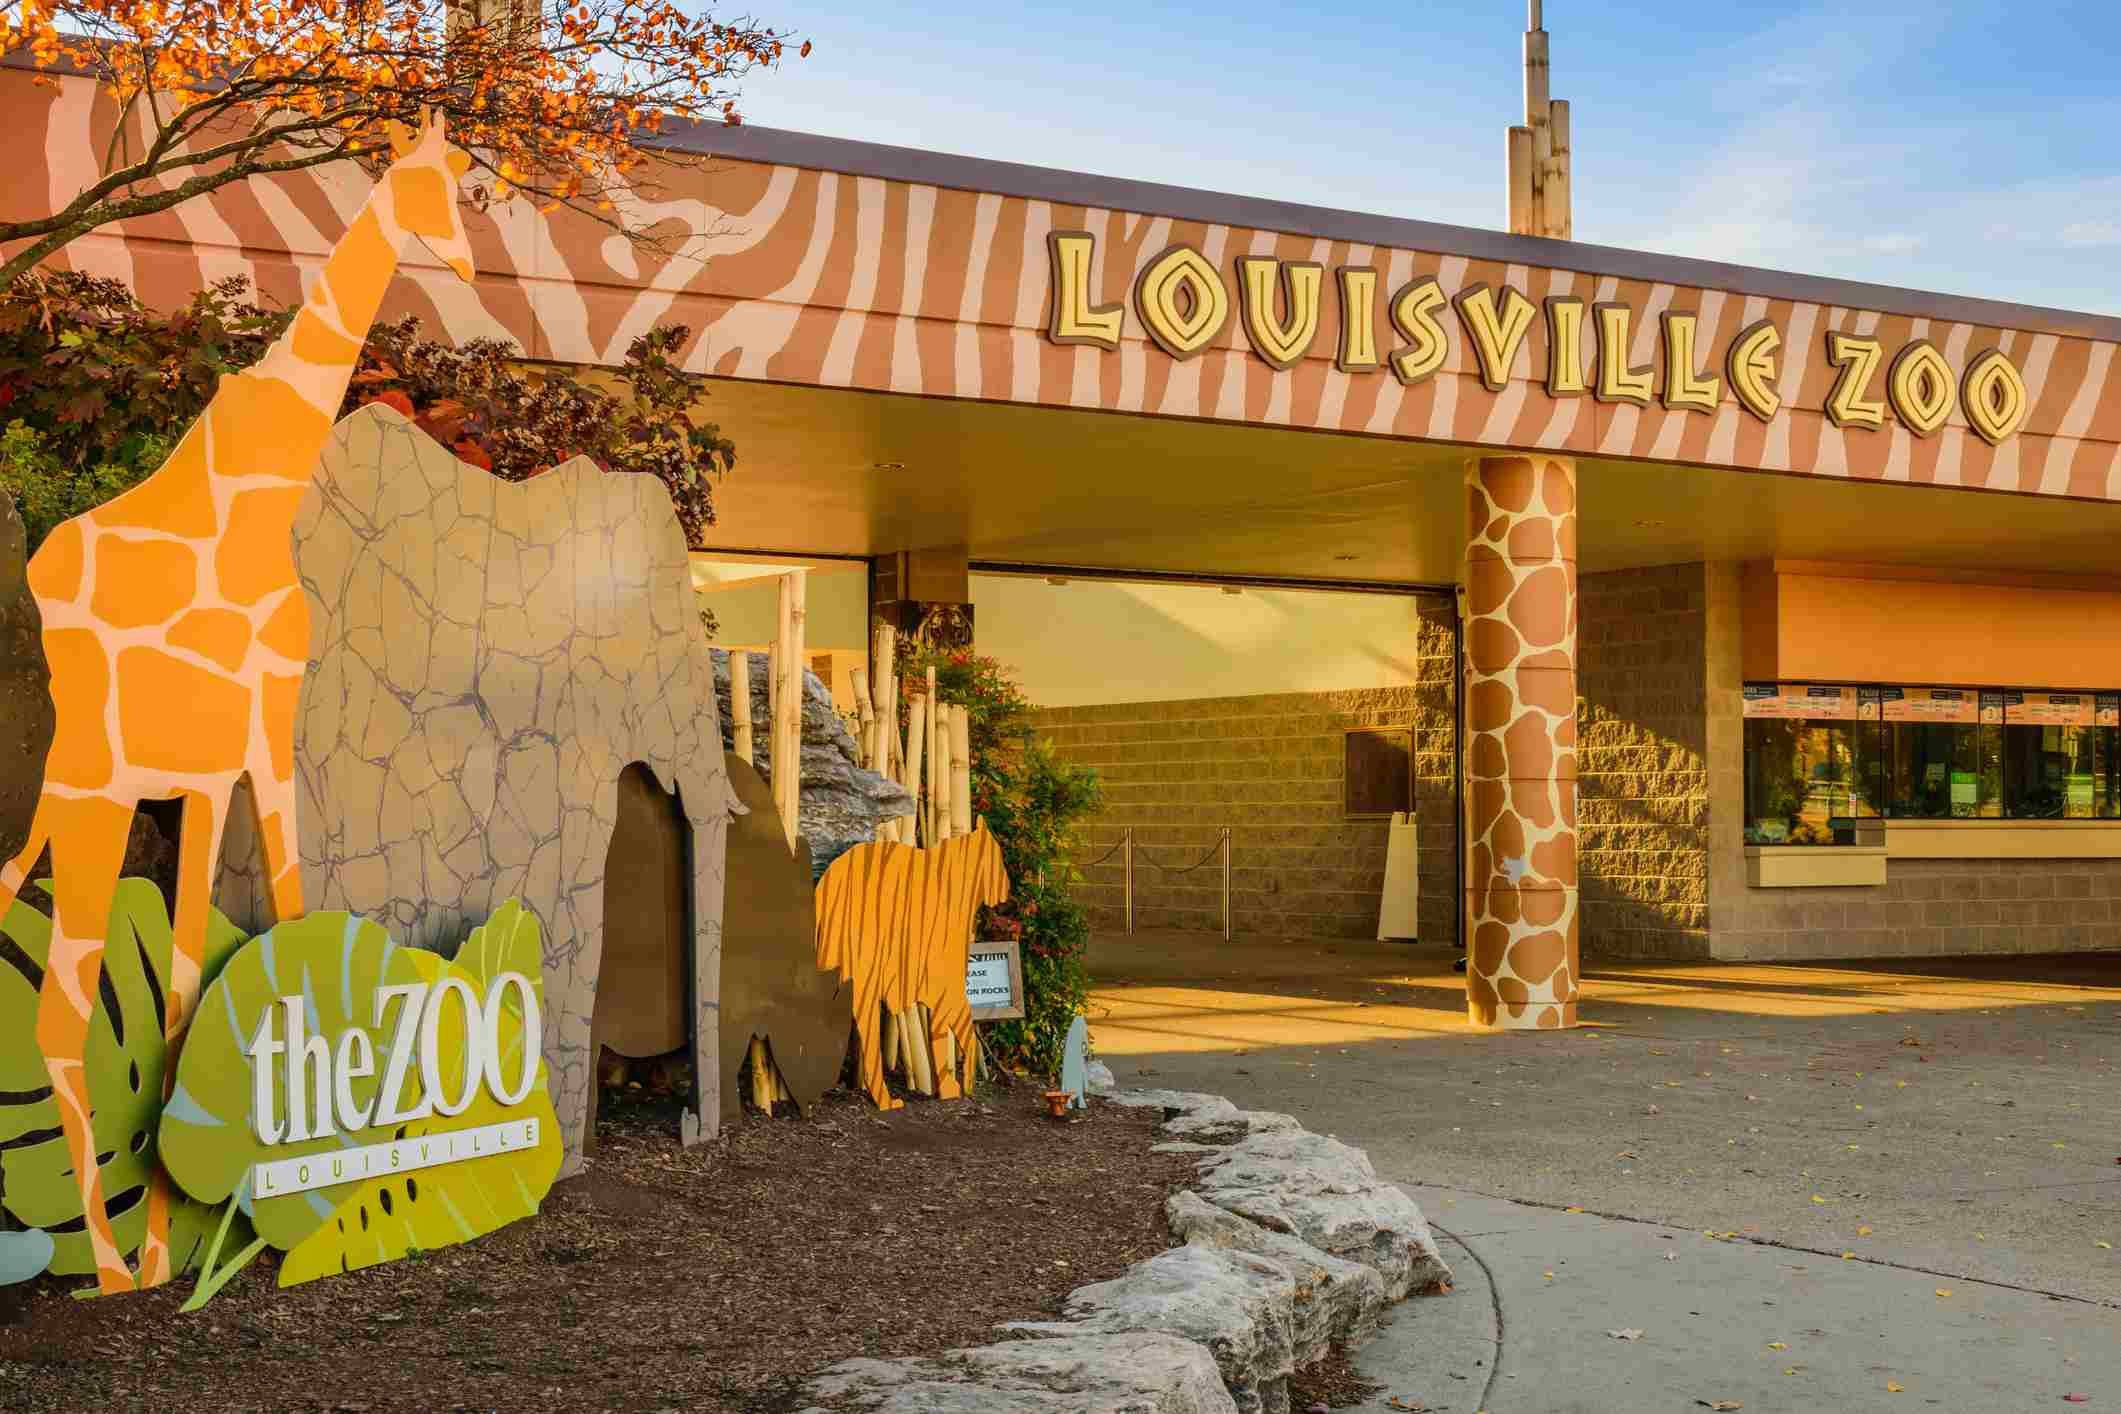 The Louisville Zoo is a 134-acre naturalistic and mixed animal facility in Louisville, Kentucky